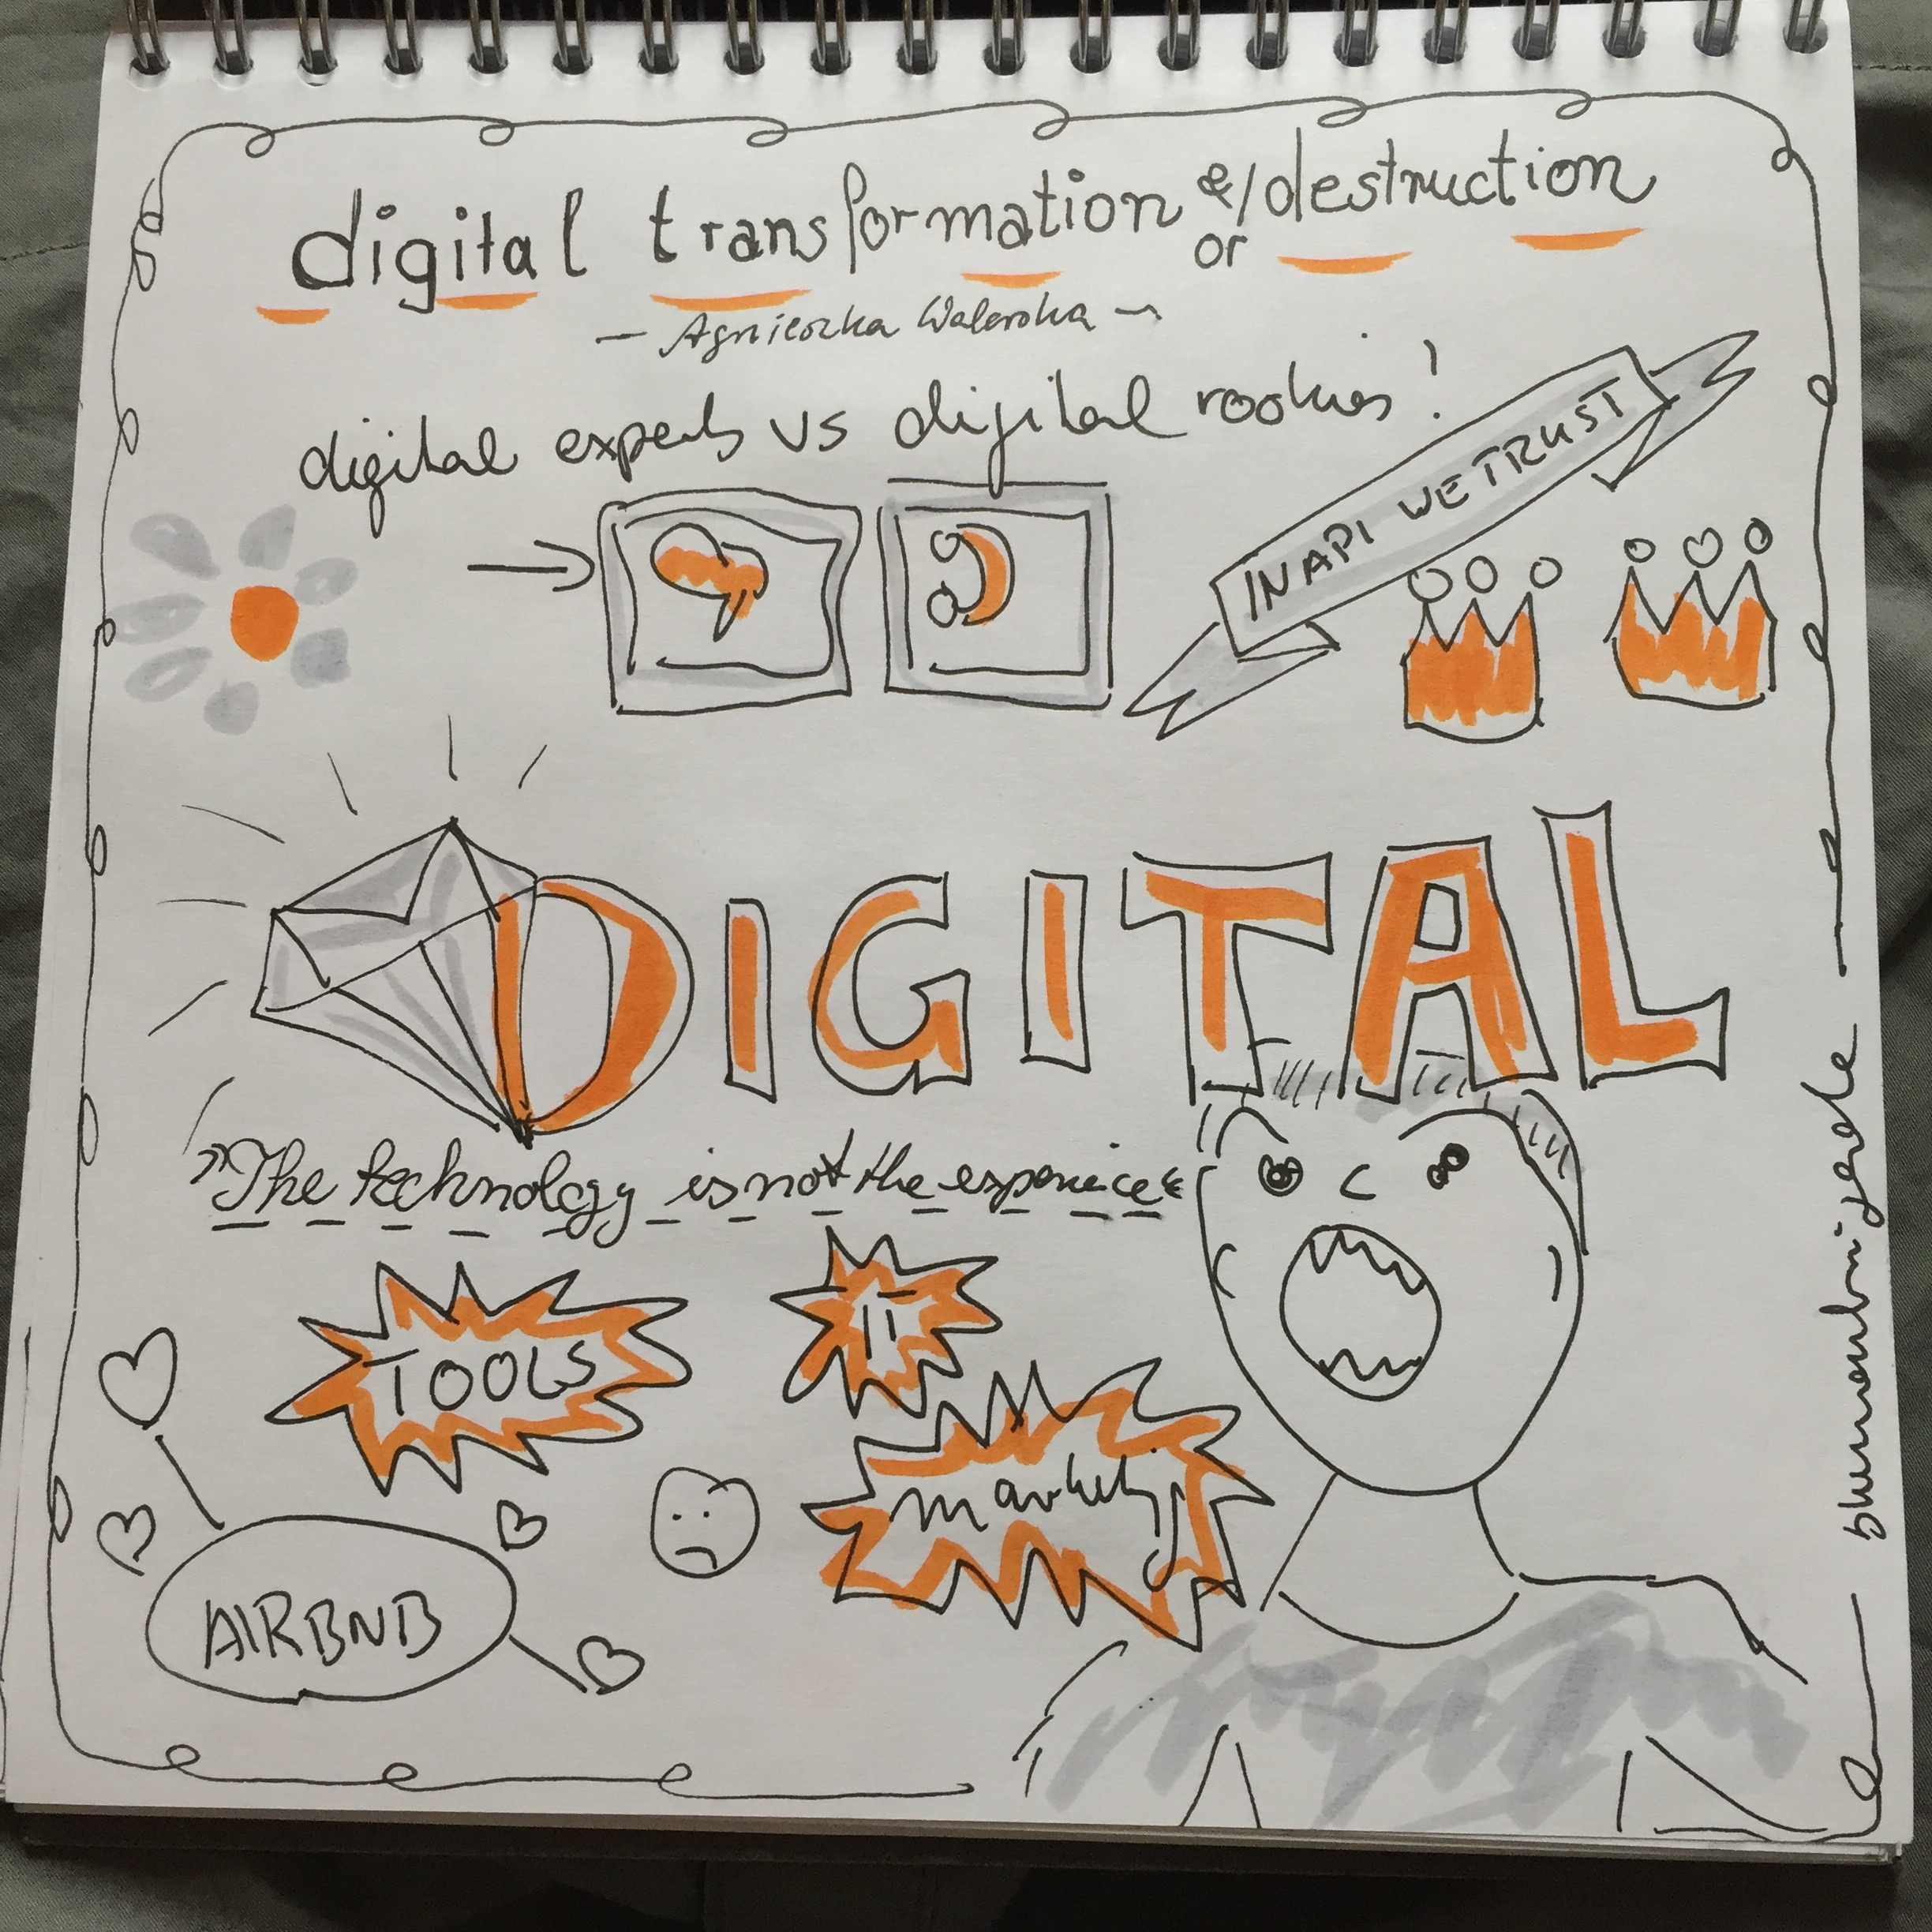 Rpten Digital Transformation and Destruction sketchnote